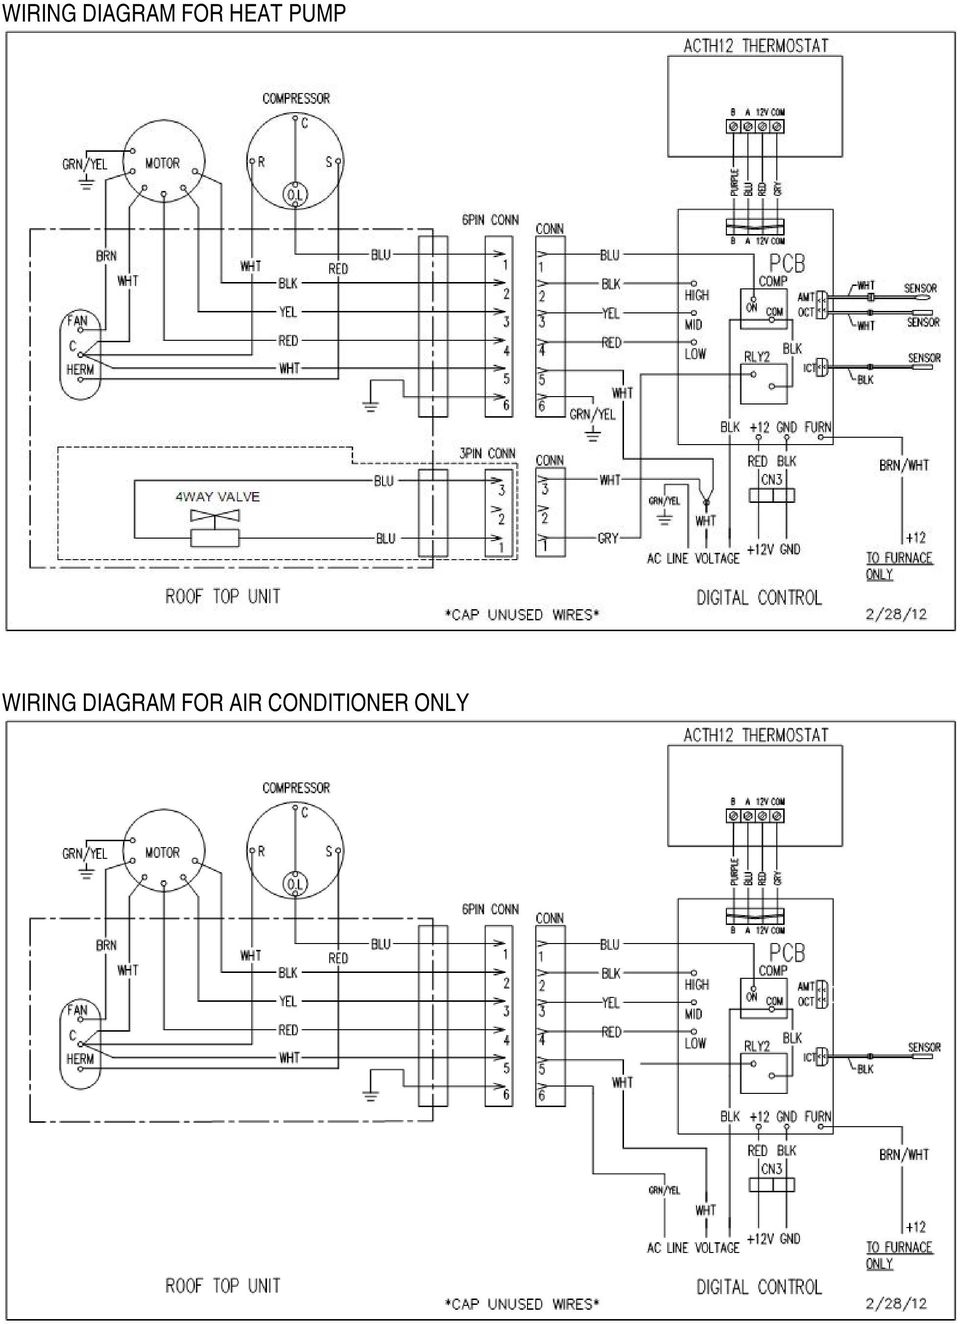 AIR CONDITIONER & HEAT PUMP DIGITAL CONTROL FOR DUCTED SYSTEM INSTALLATION  AND OPERATING INSTRUCTIONS - PDF Free Download | Advent Air Thermostat Wiring Diagram |  | DocPlayer.net